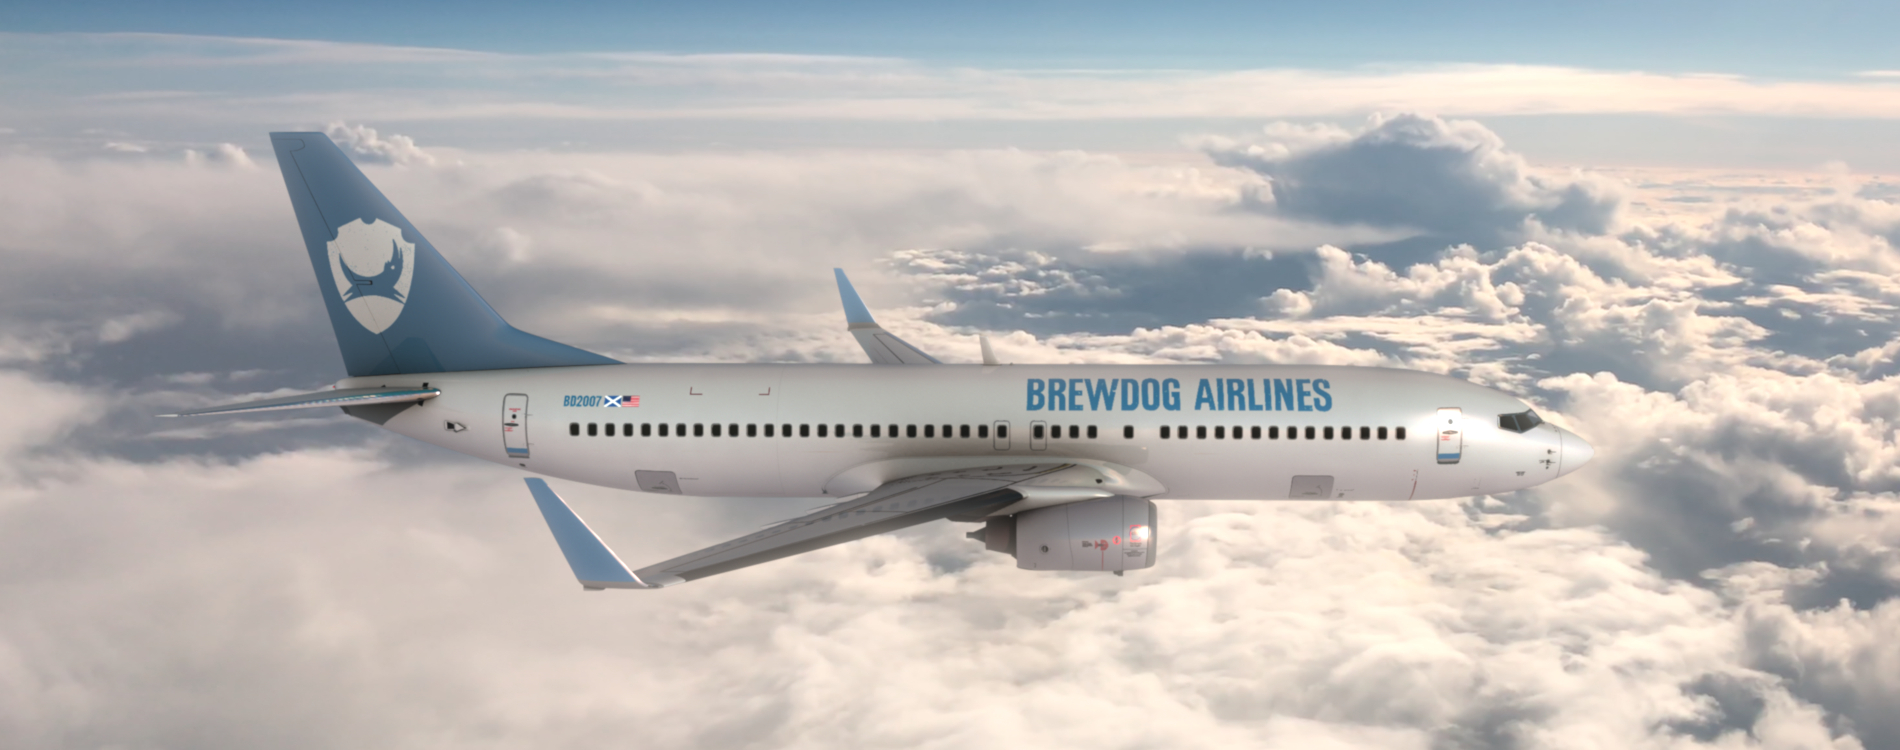 BREWDOG AIRLINES TICKETS ARE LIVE